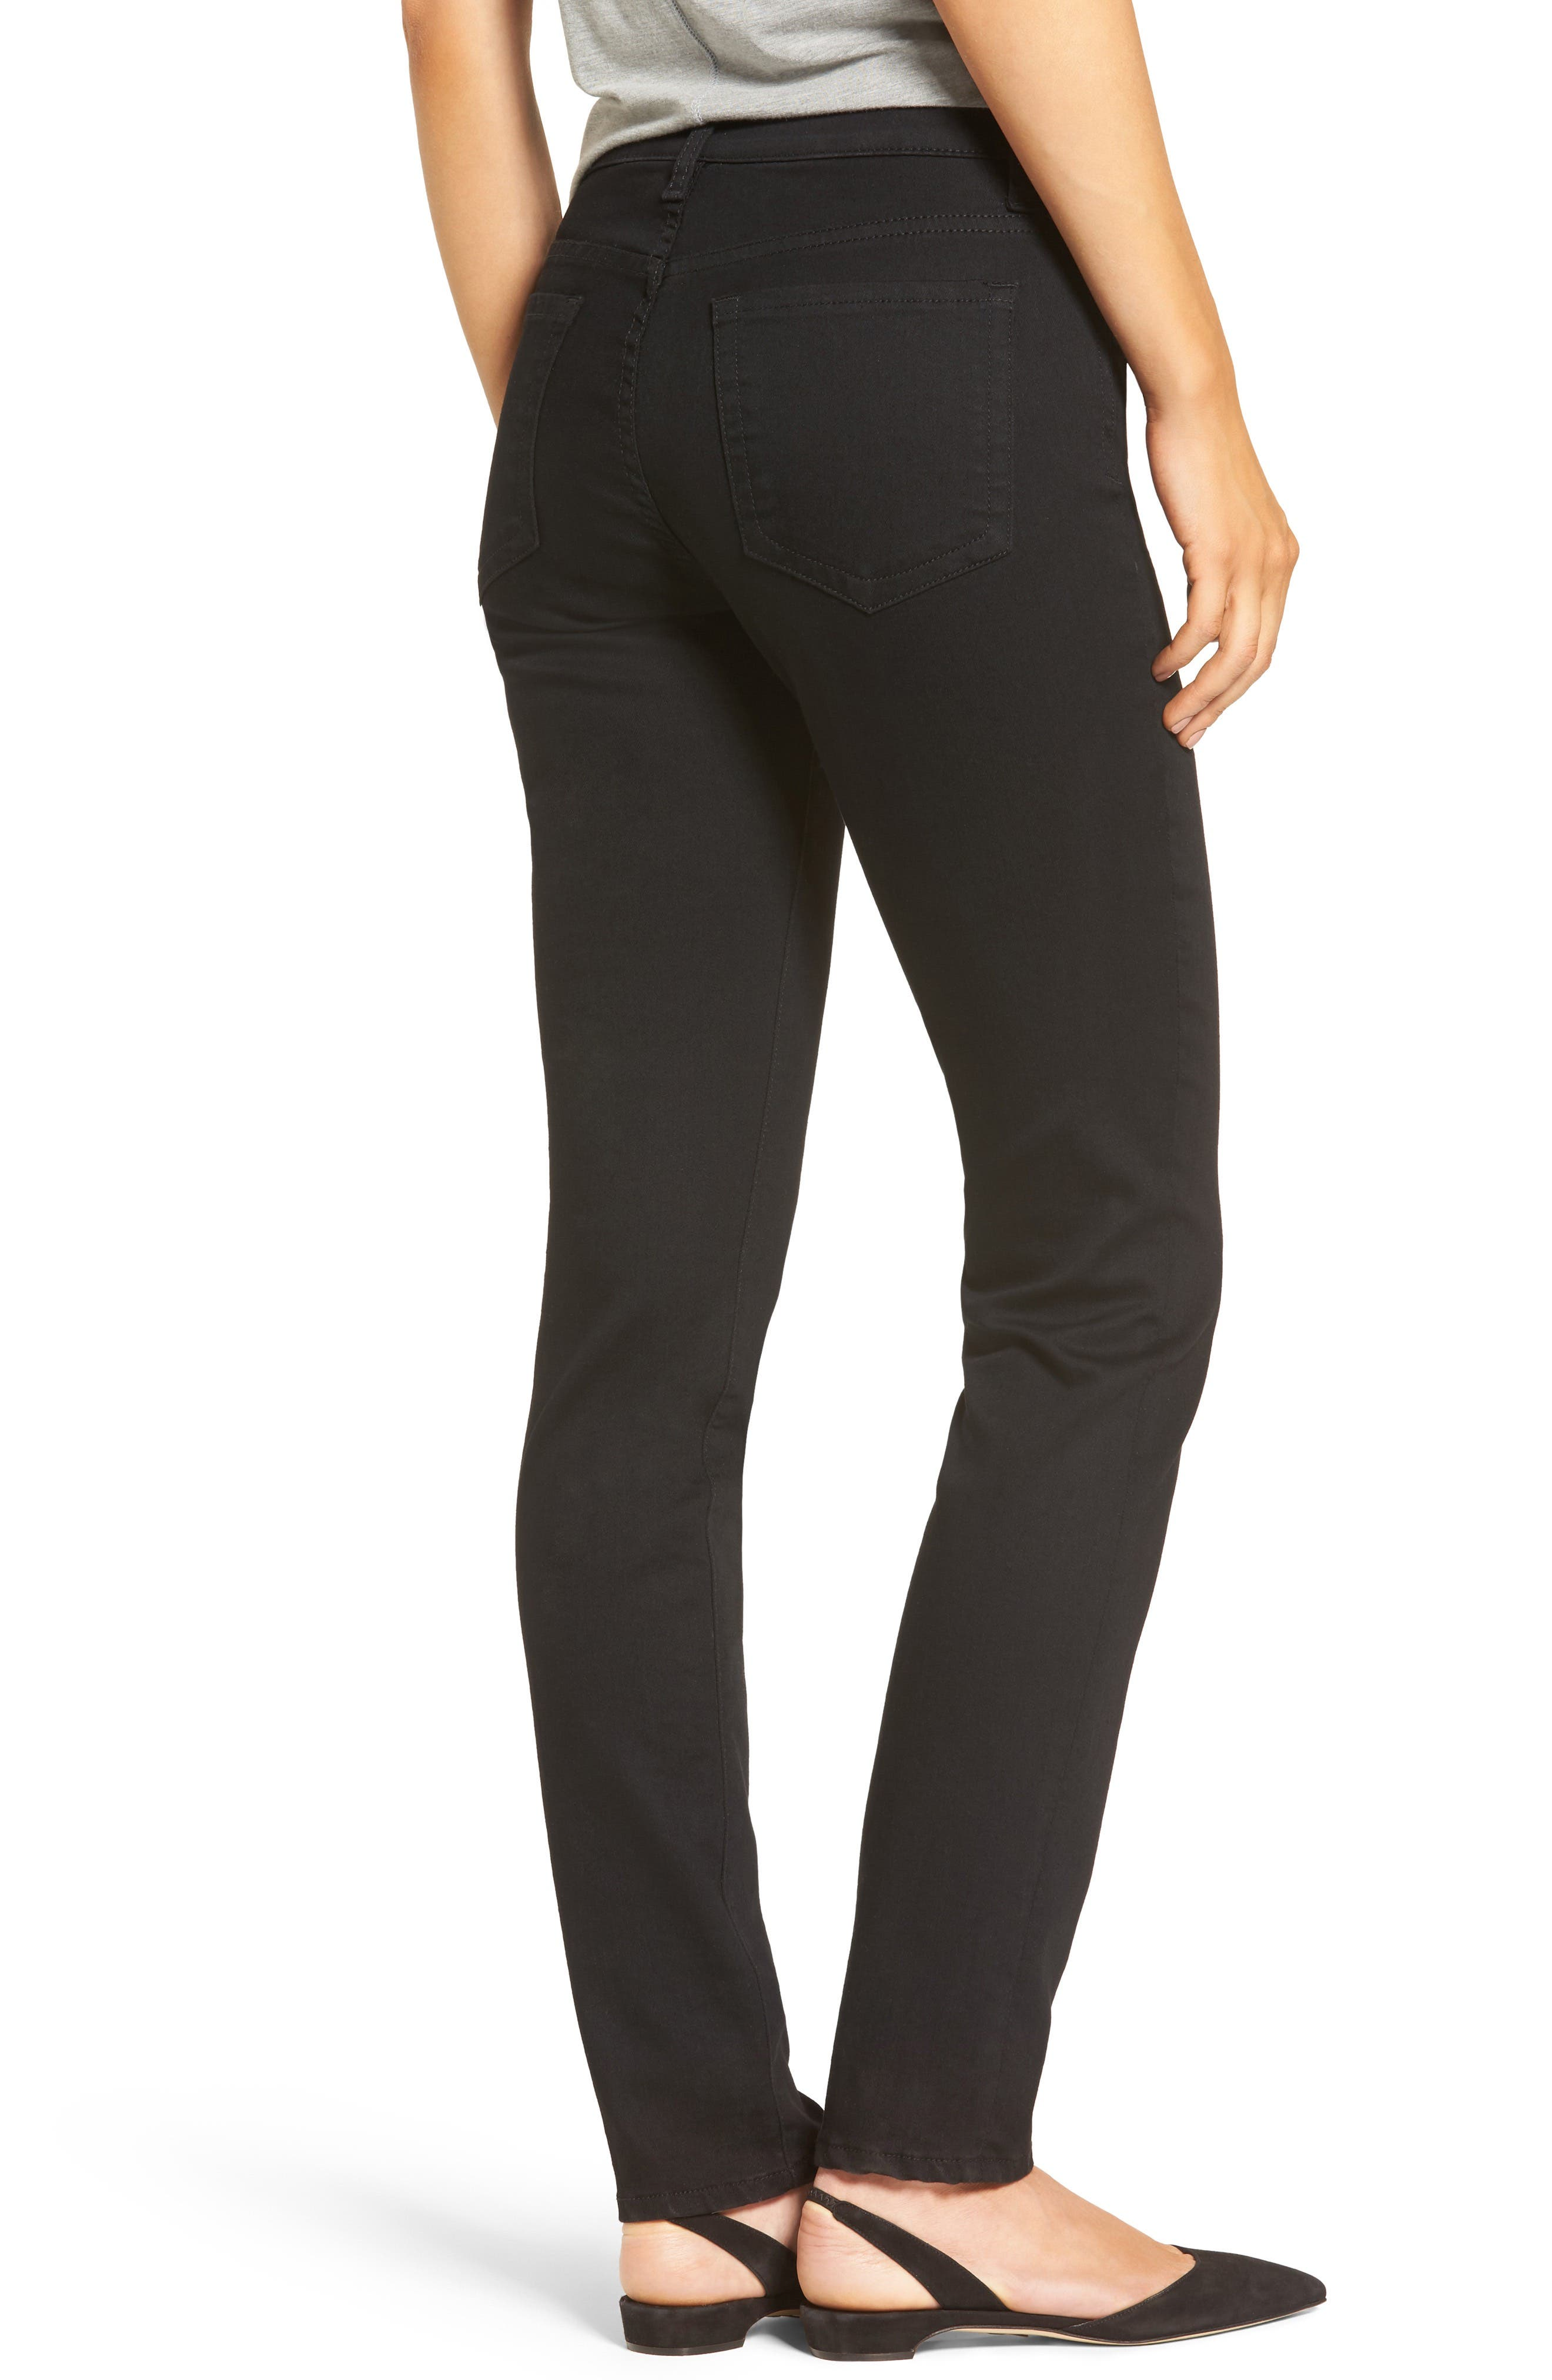 Diana Stretch Skinny Jeans,                             Alternate thumbnail 2, color,                             002